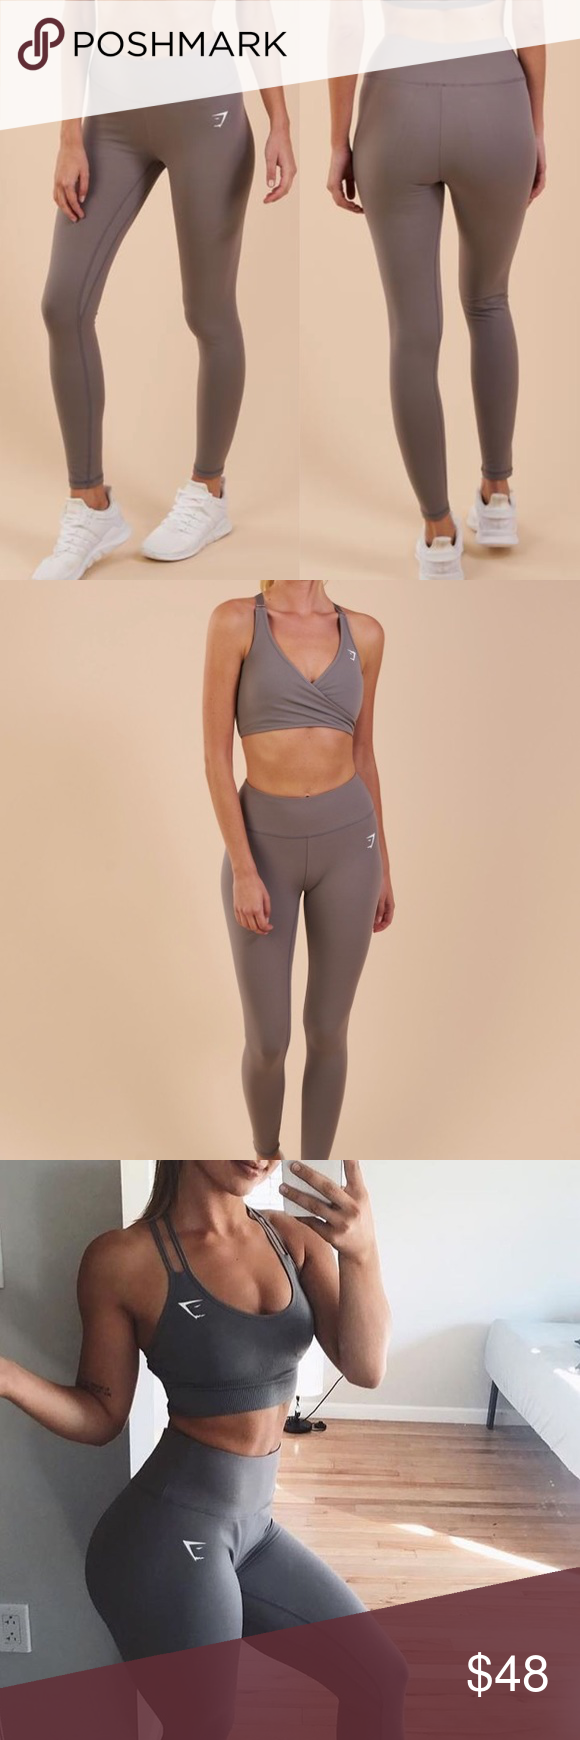 59a79df0c8 S GYMSHARK SLATE GREY DREAMY LEGGINGS ALIGN ALIGNS Never worn only tried  on. I actually think I need to order an XS so that s why I m listing them  their ...